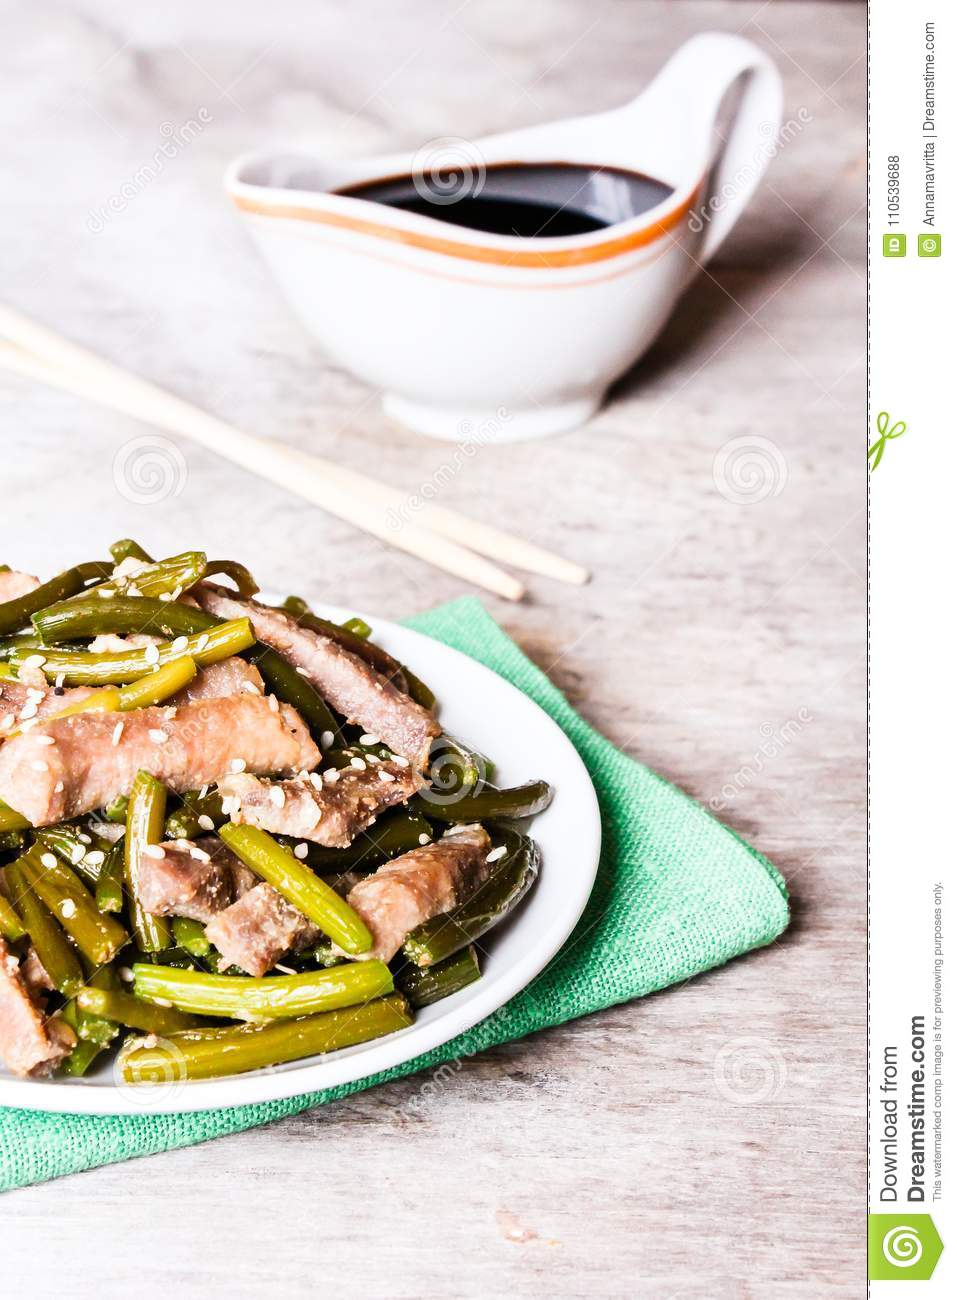 Traditional Chinese Dish With Roasted Pork, Garlic, Ginger